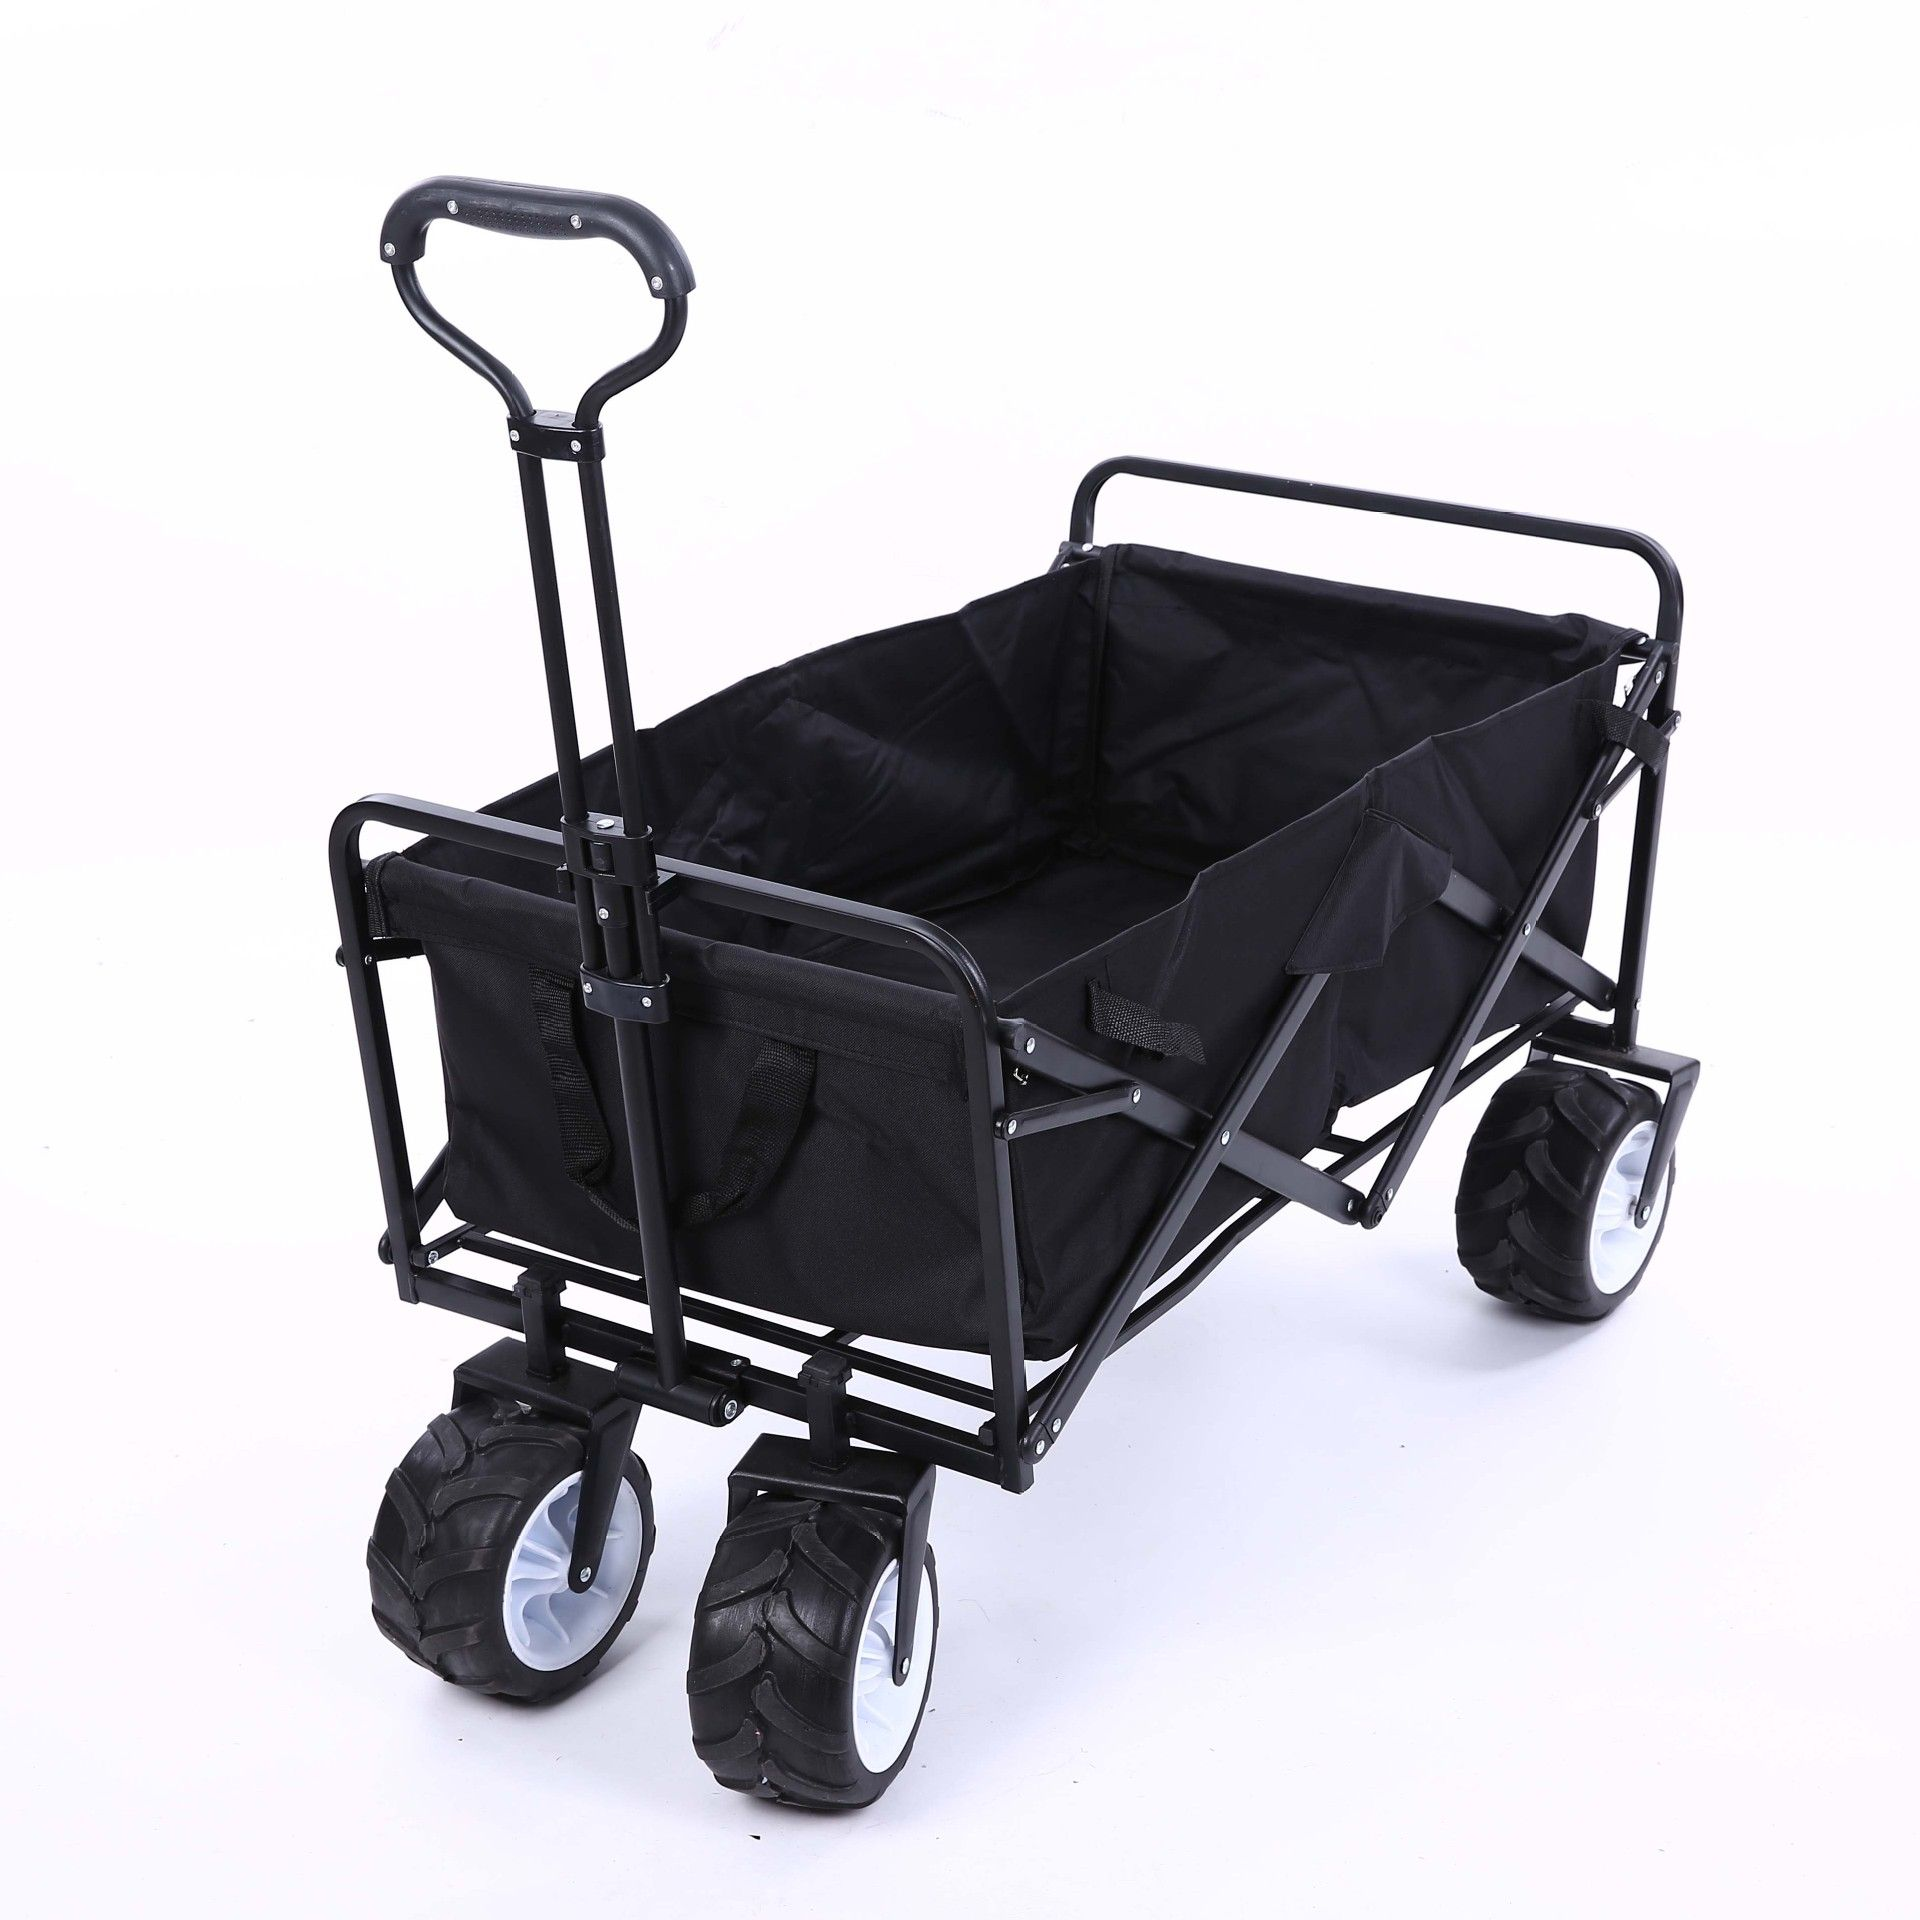 Foldable Portable Stainless Steel+600D Oxford Cloth Four Wheels Pet Stroller Large Space Shopping Cart 150kg Beading